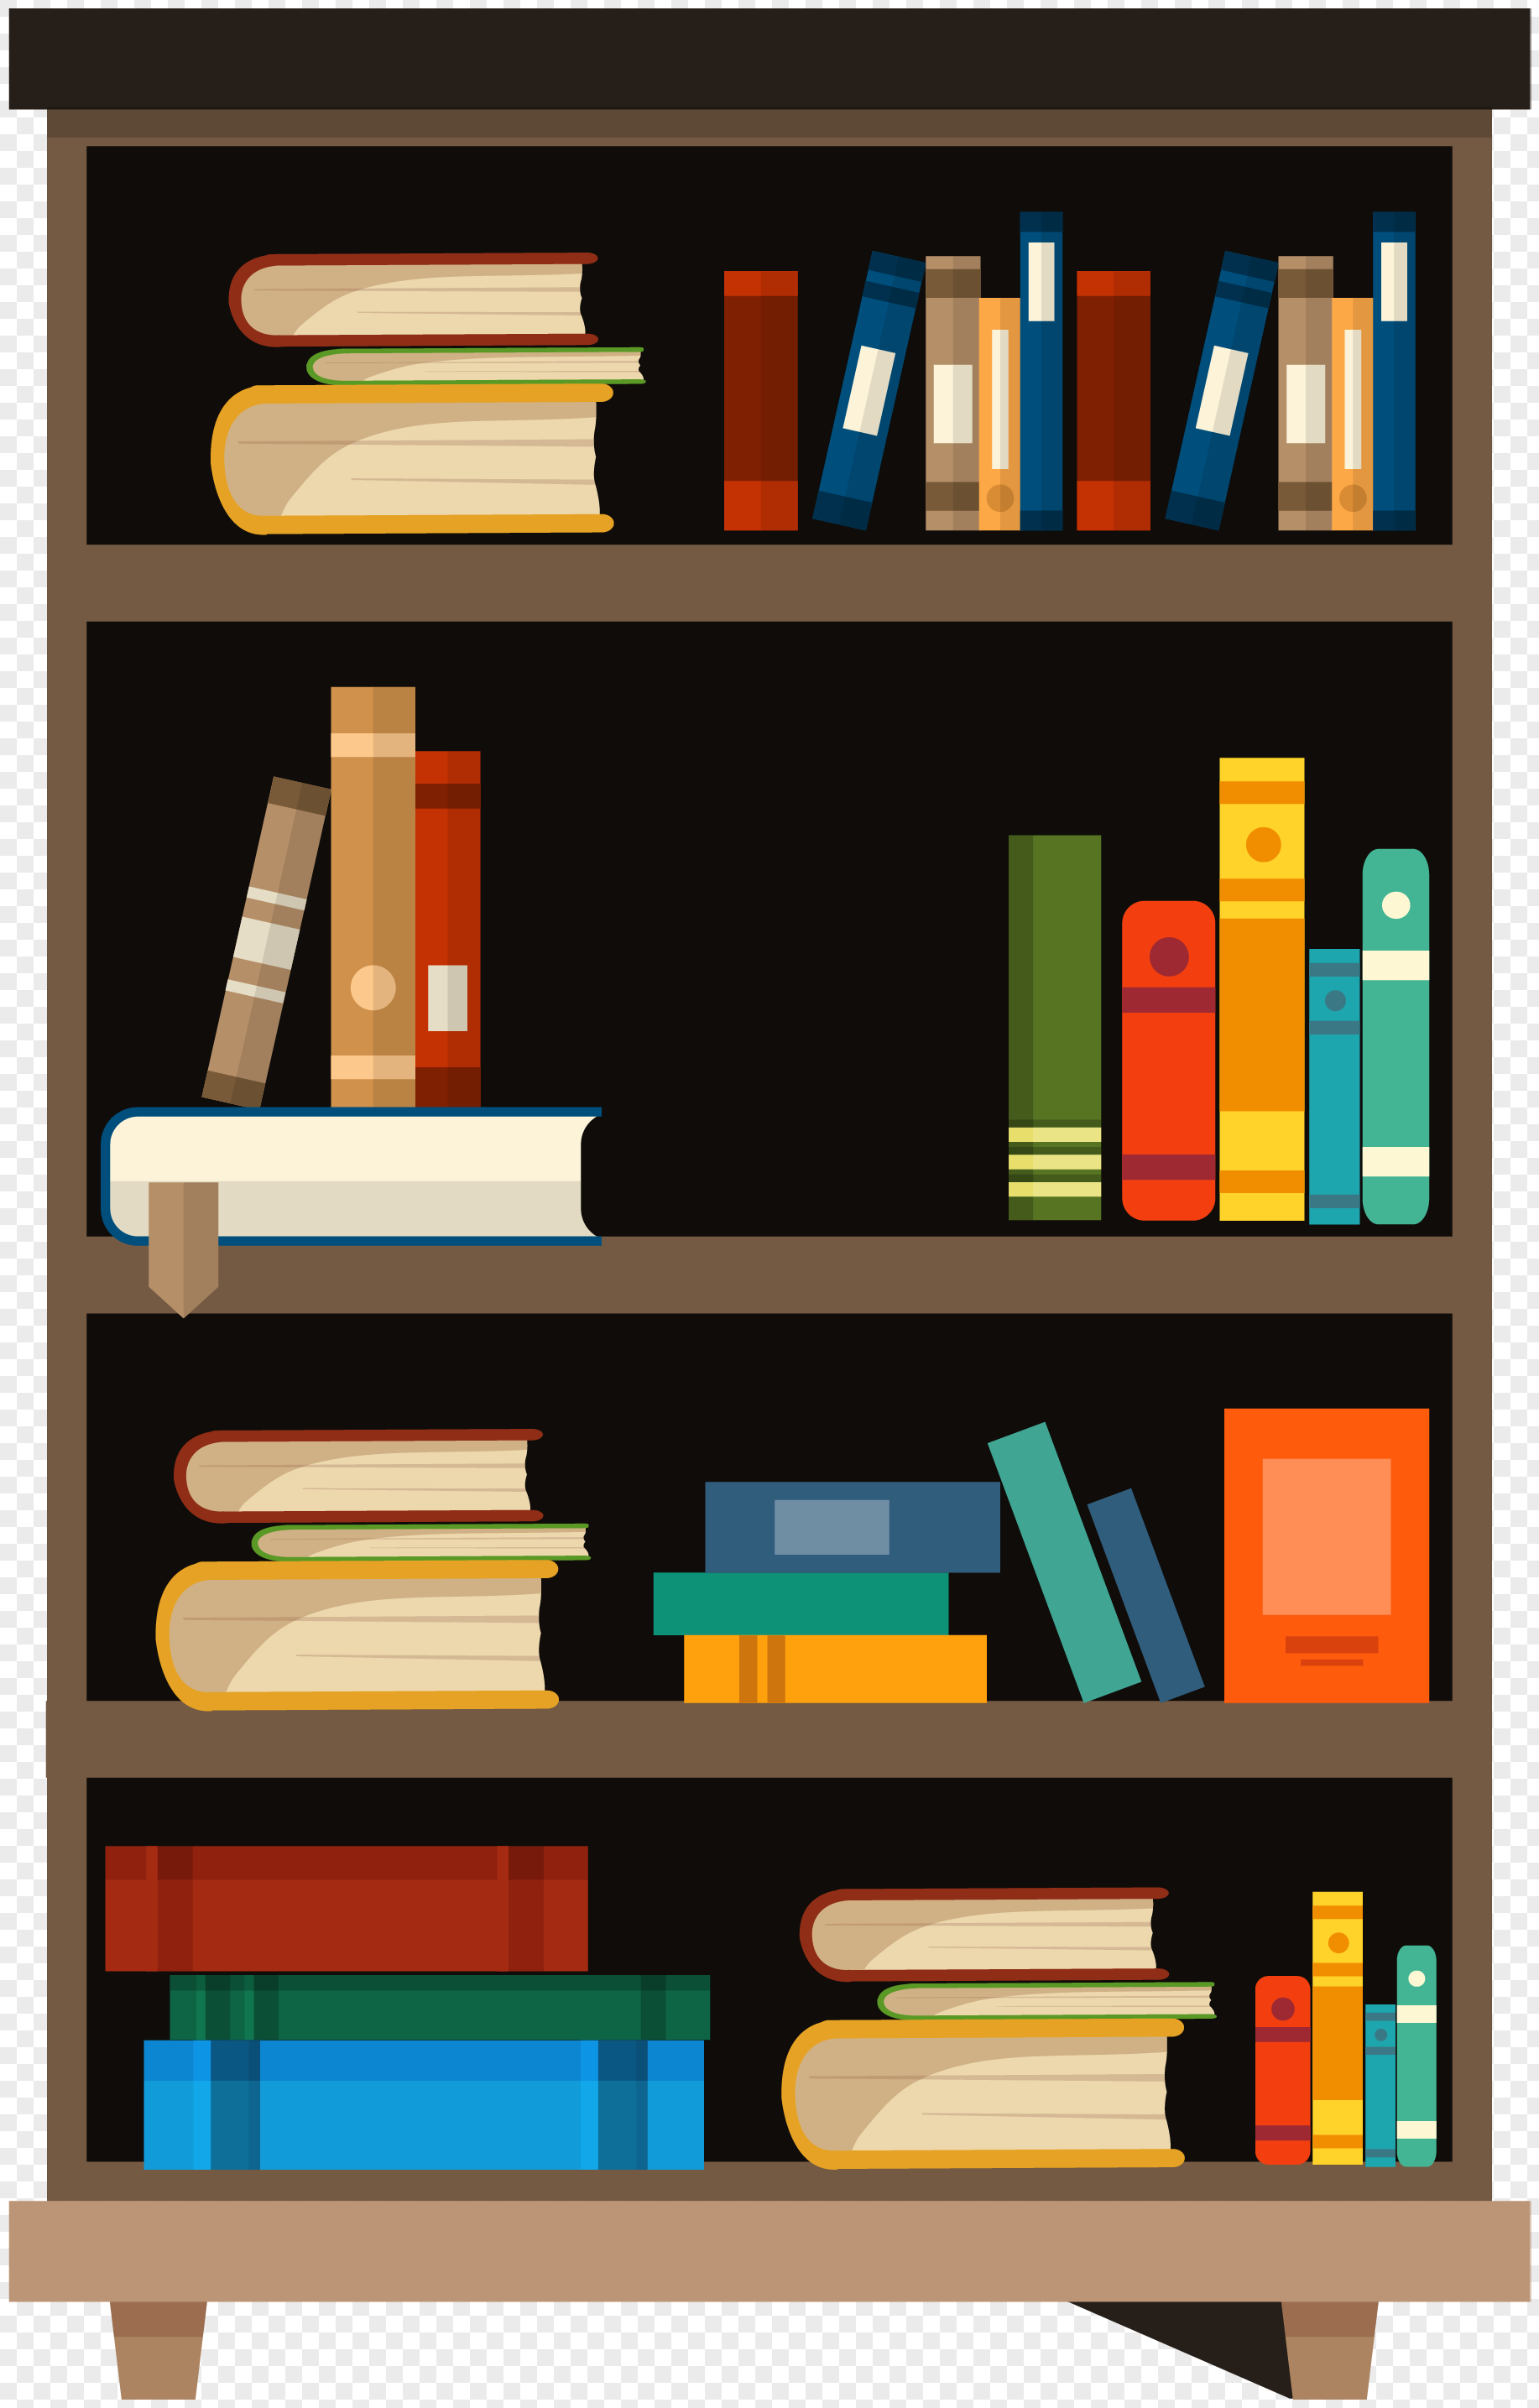 Cartoon Handwriting Bookshelf Png Image Picture Free Download